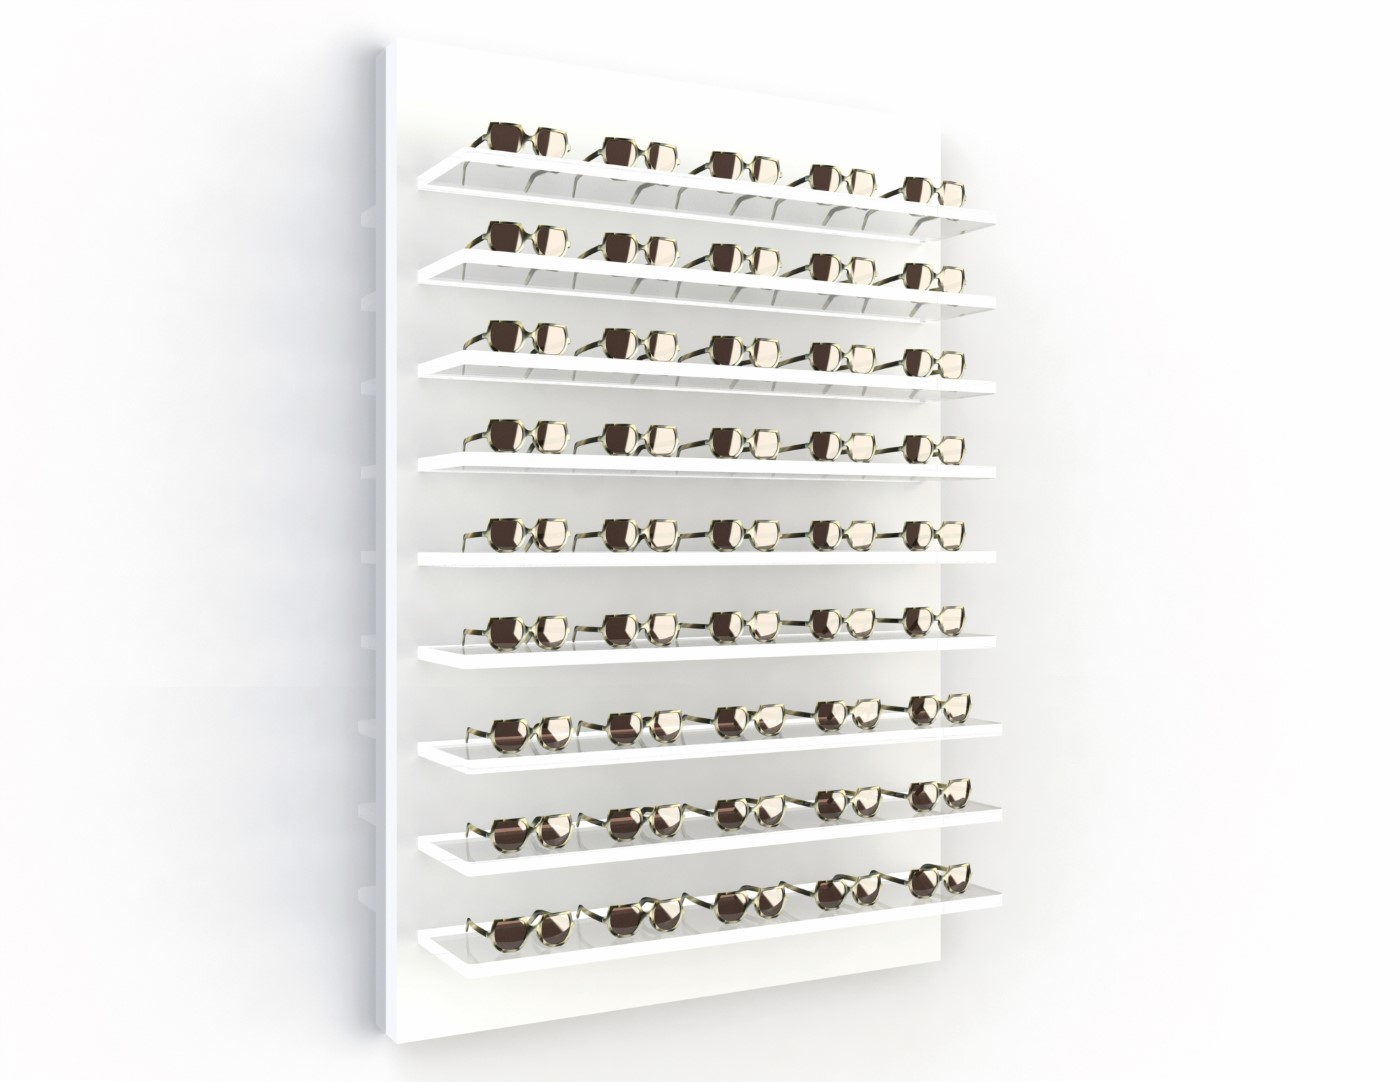 <strong>#58150</strong><br>9x 20mm acrylic shelves<br>40 frames